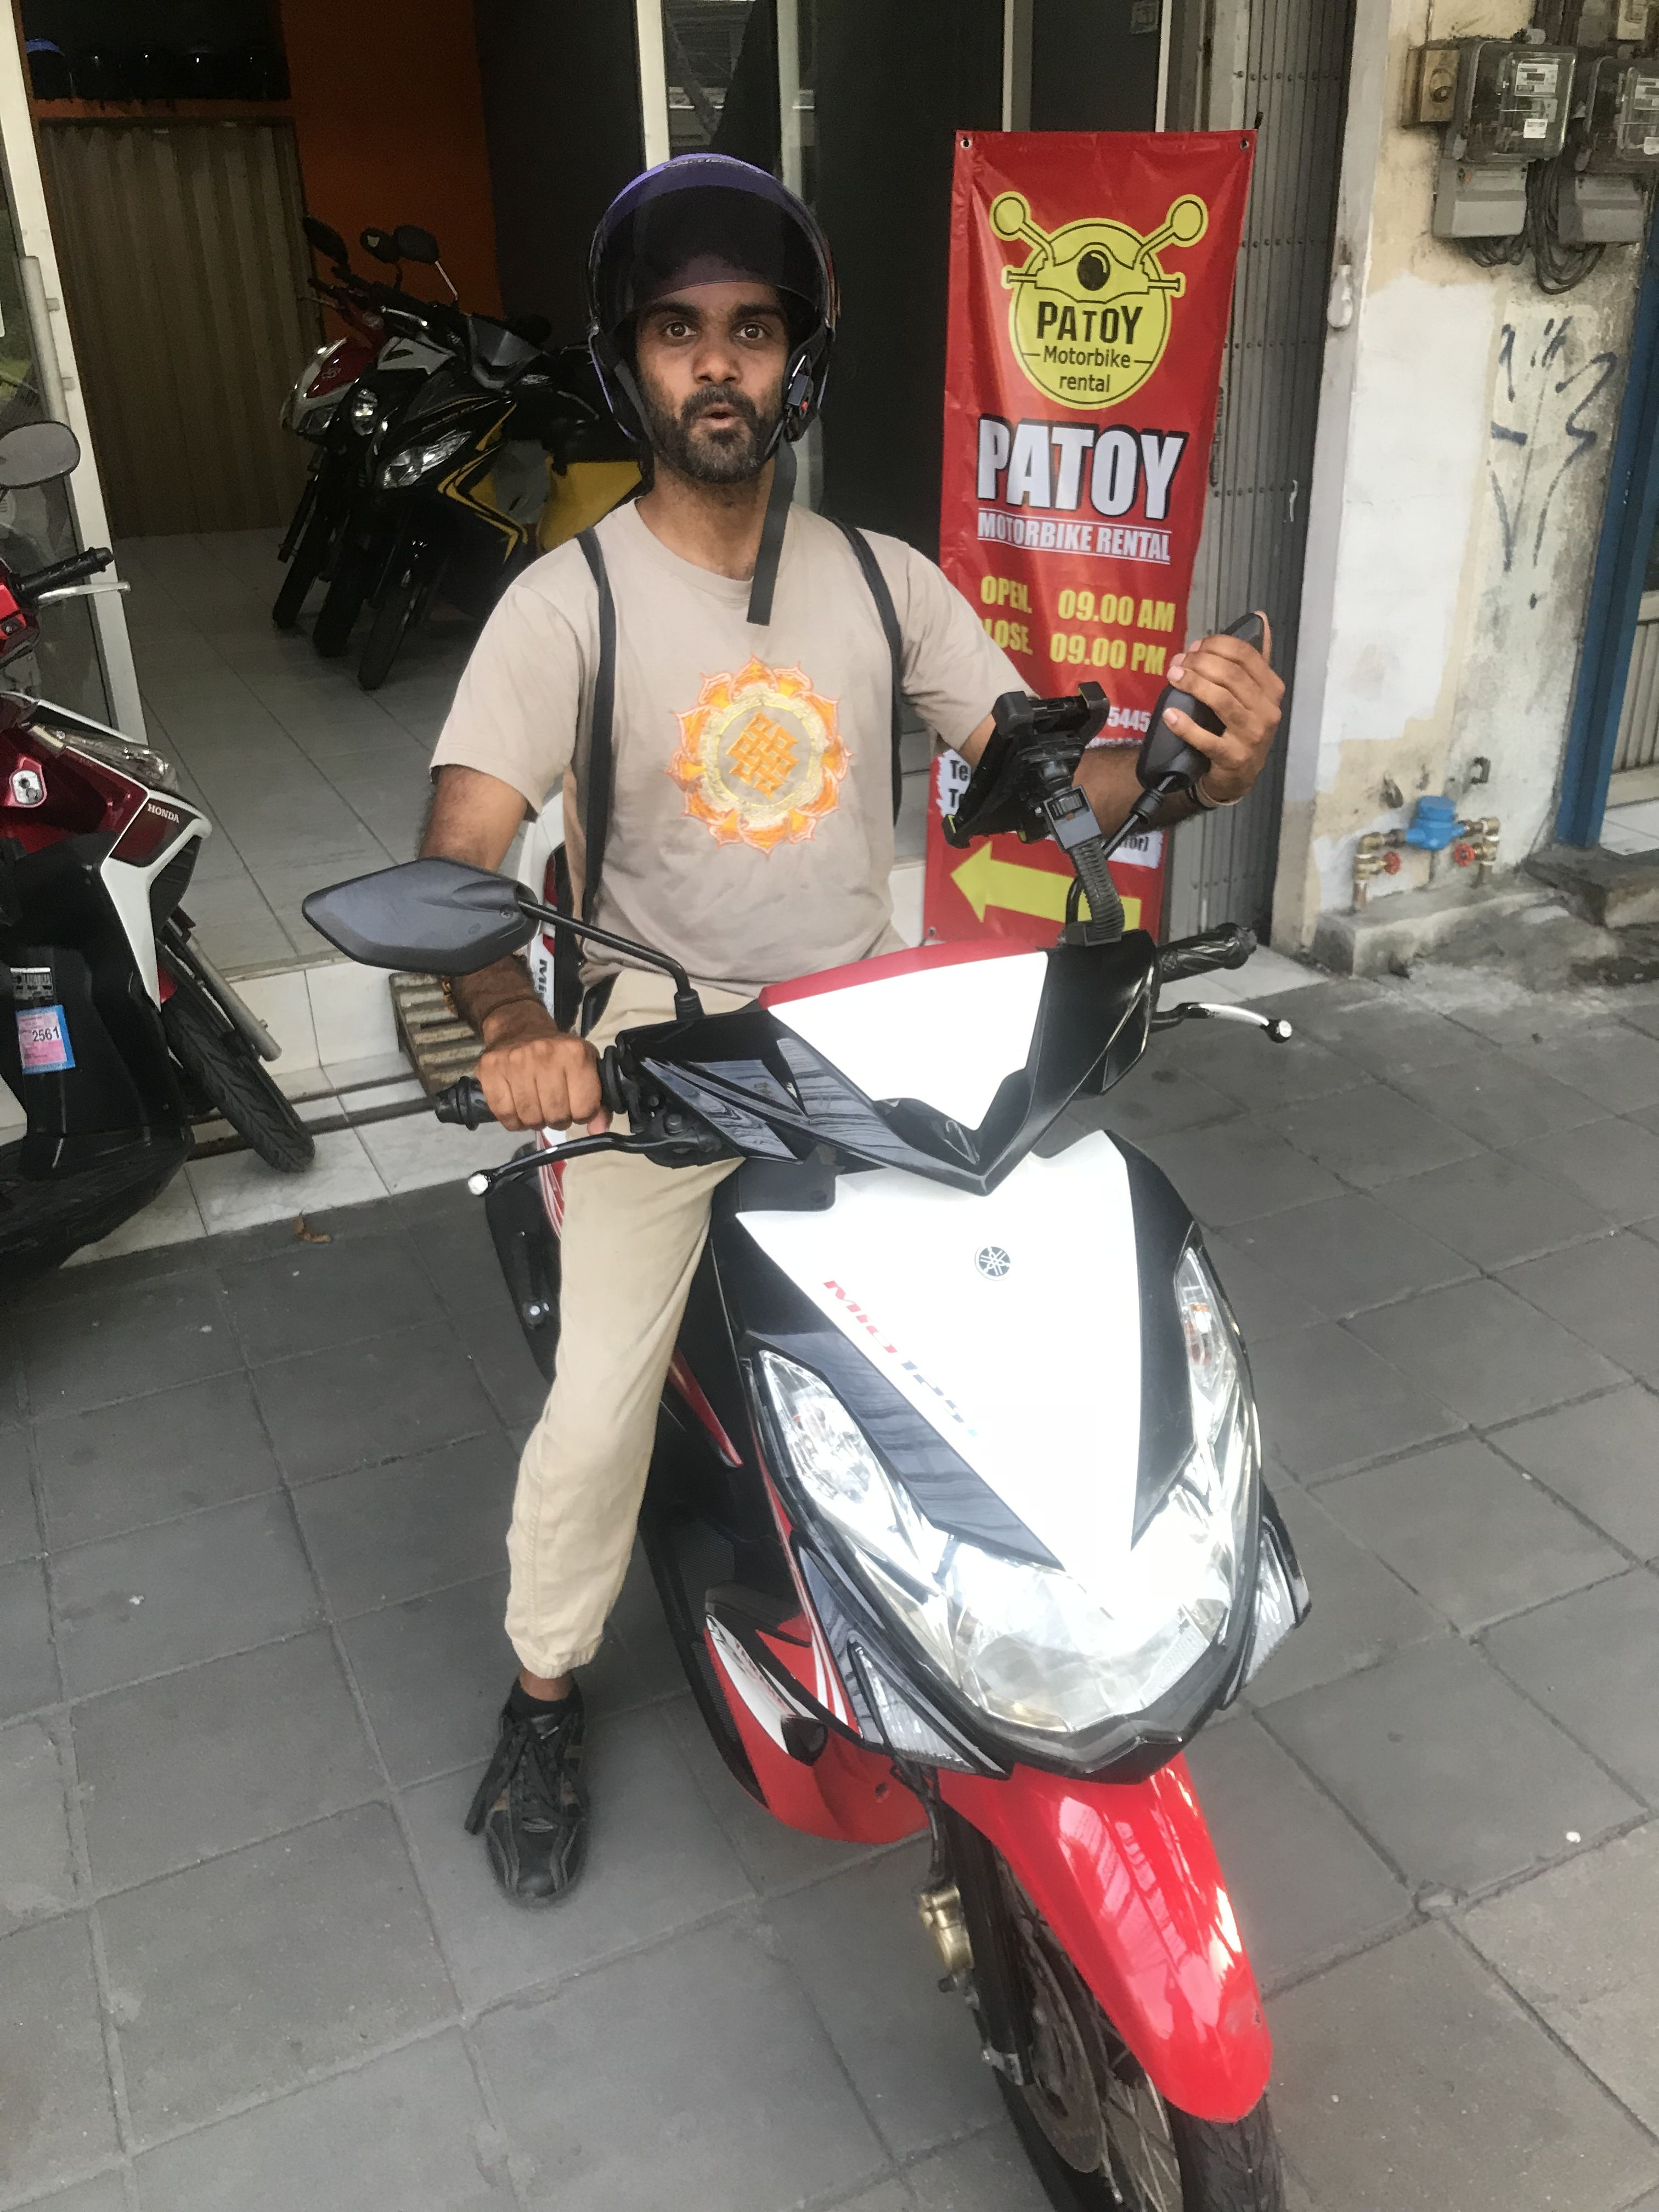 Motorbike Scooter Rental In Bangkok Our Happy Customer Thank